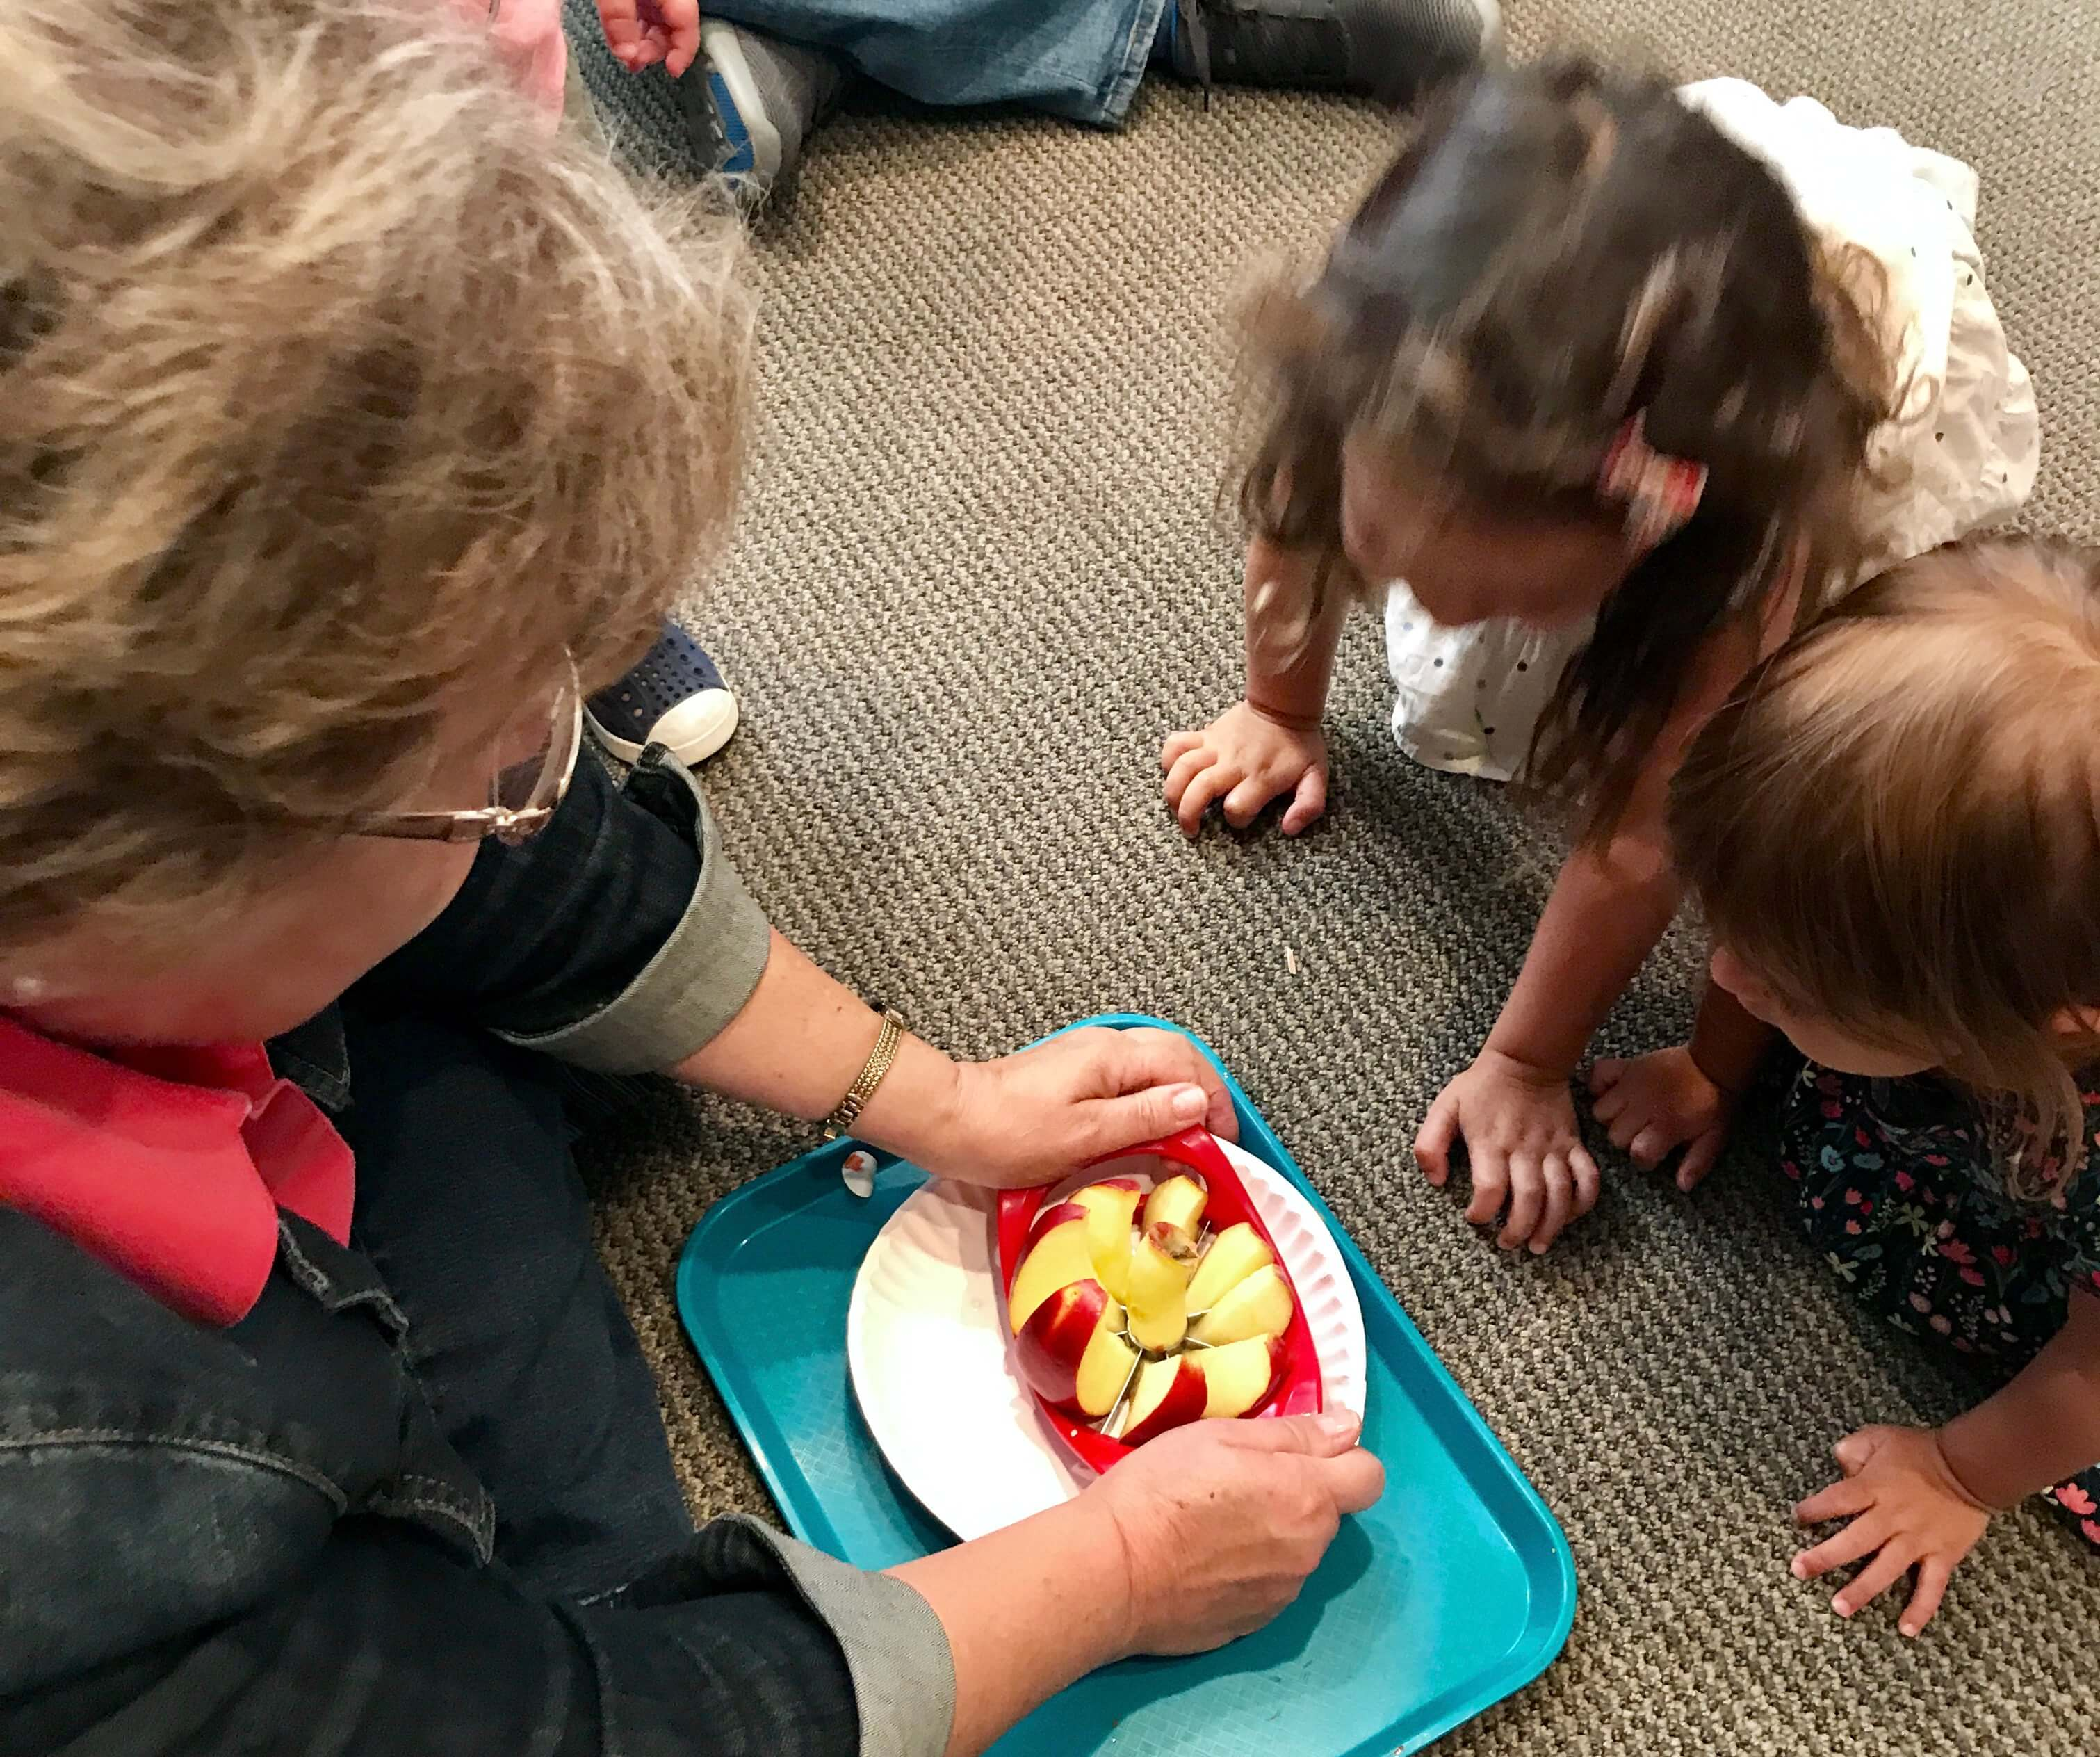 2 toddler looking at teacher's hands cutting apples with a apple cutter